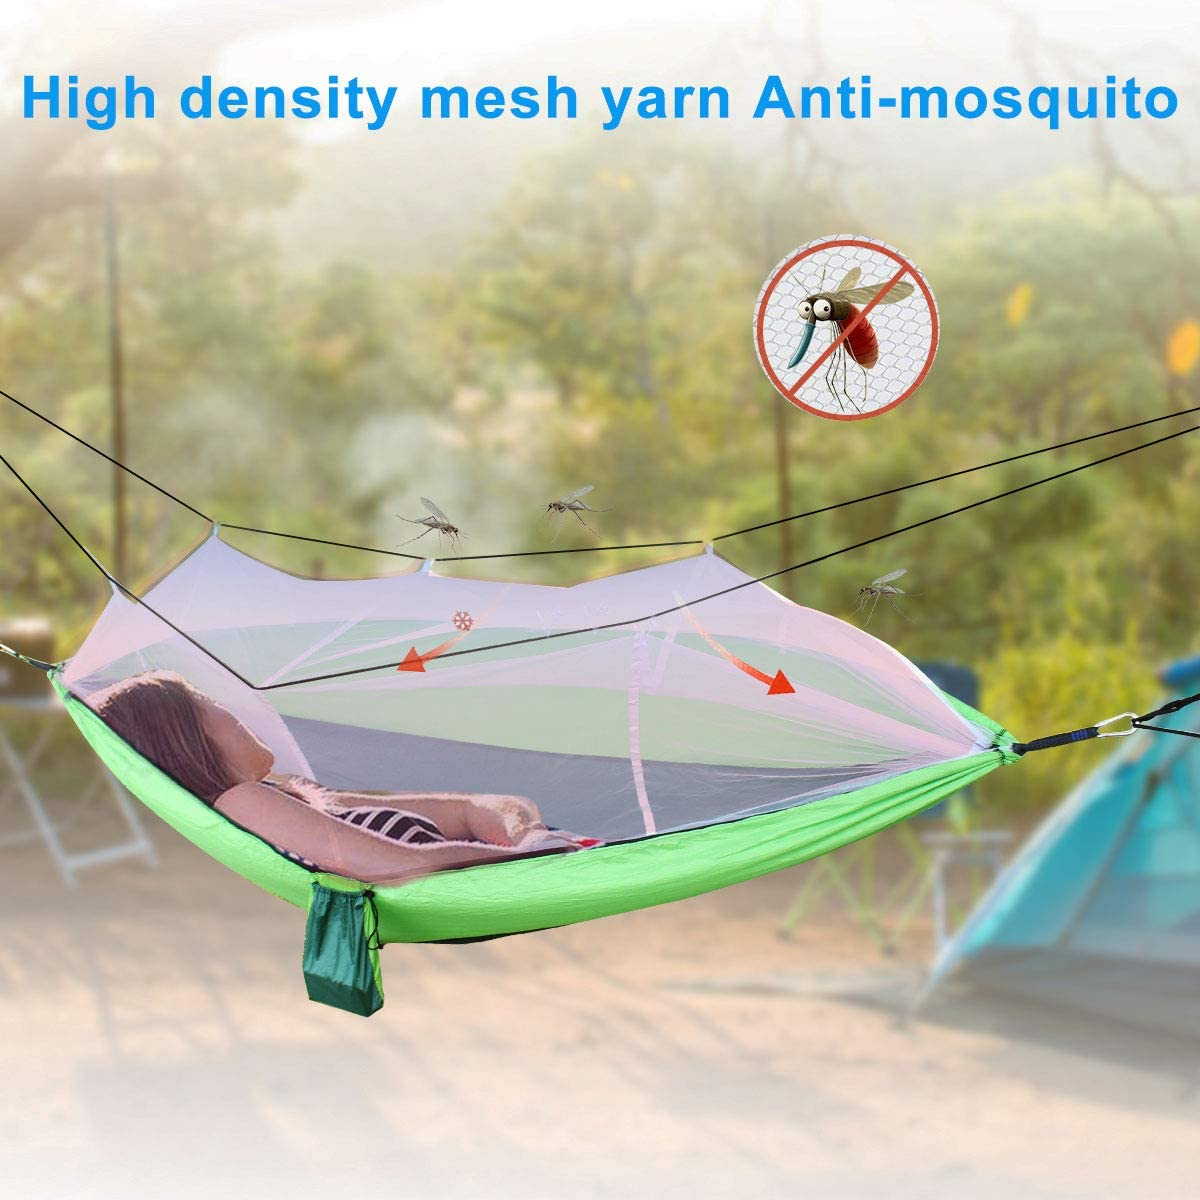 2 Tree Ropes Carabiners for Outdoor Backpacking Camping Hiking Travel Park Garden Backyard Green Bcway Camping Hammock Double Lightweight Portable Nylon Parachute Hammocks with Mosquito Net